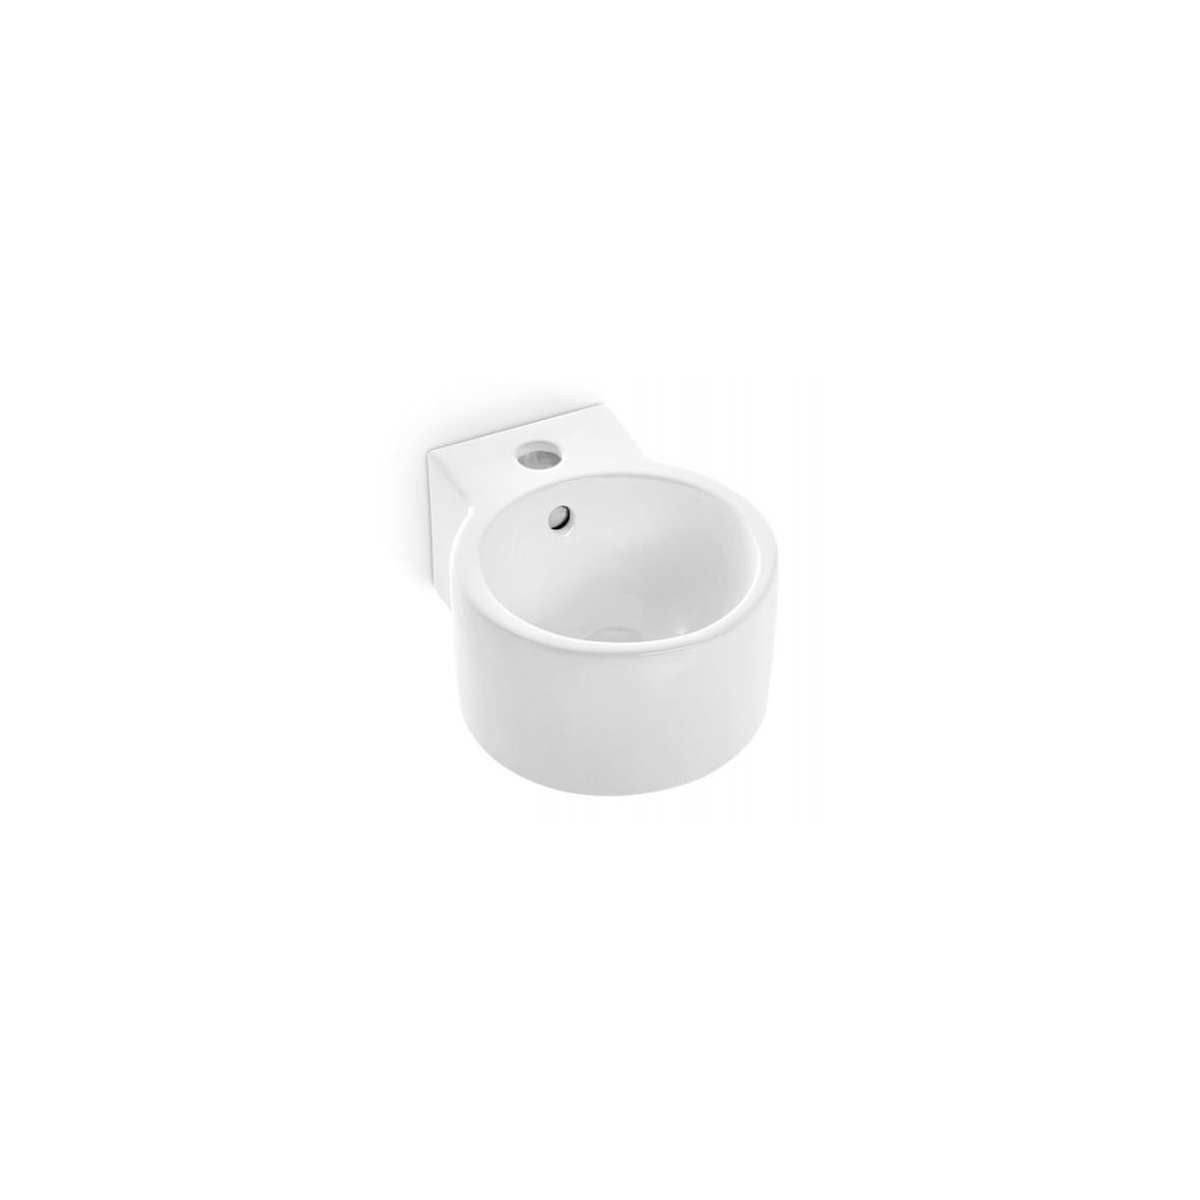 Lavabo Mini Jerez - Lavabos mini - Marca The Bathco